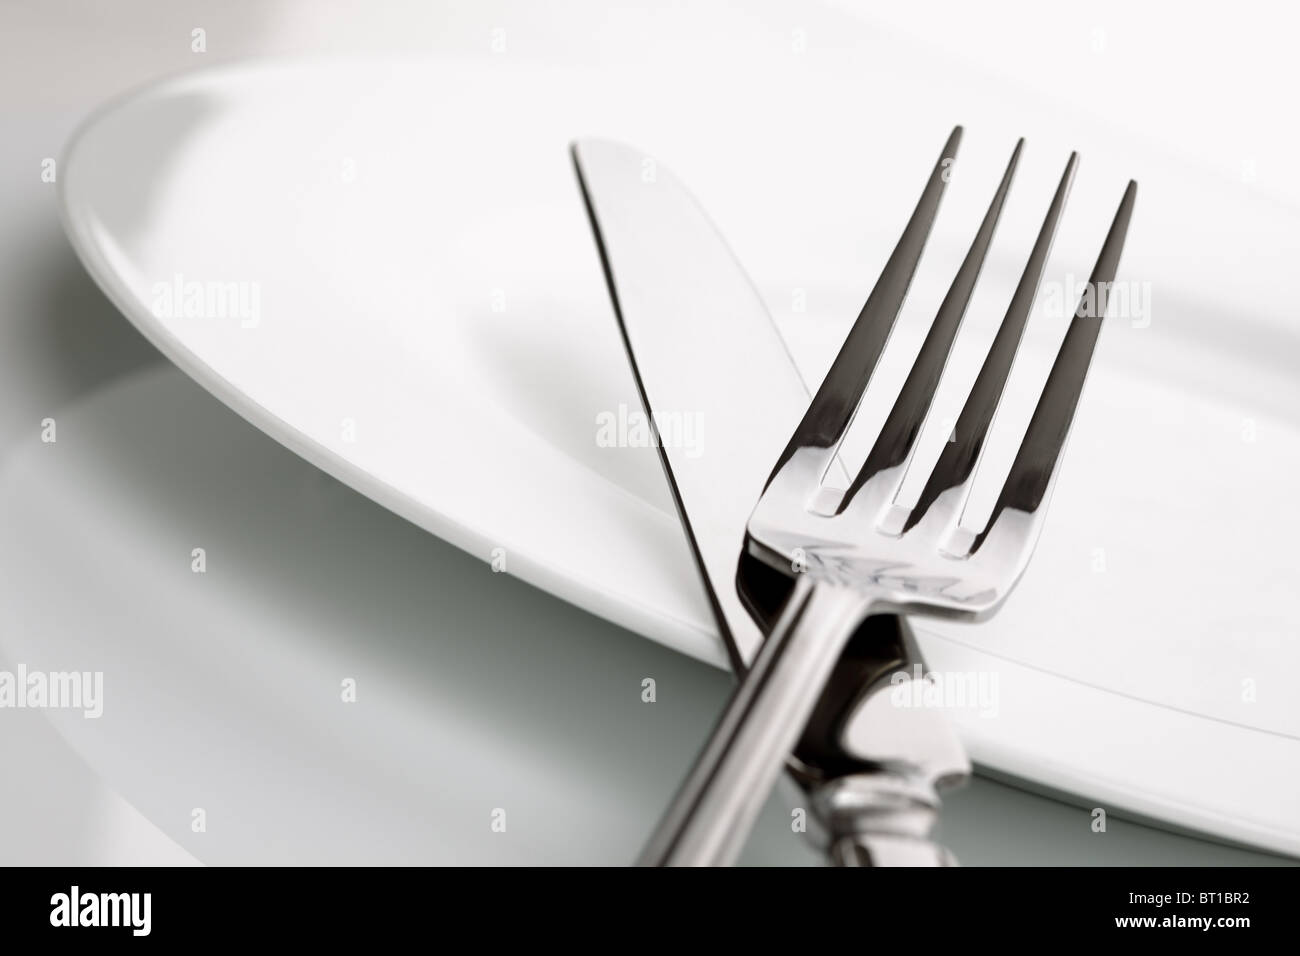 Dinner plate, knife and fork silverware - Stock Image